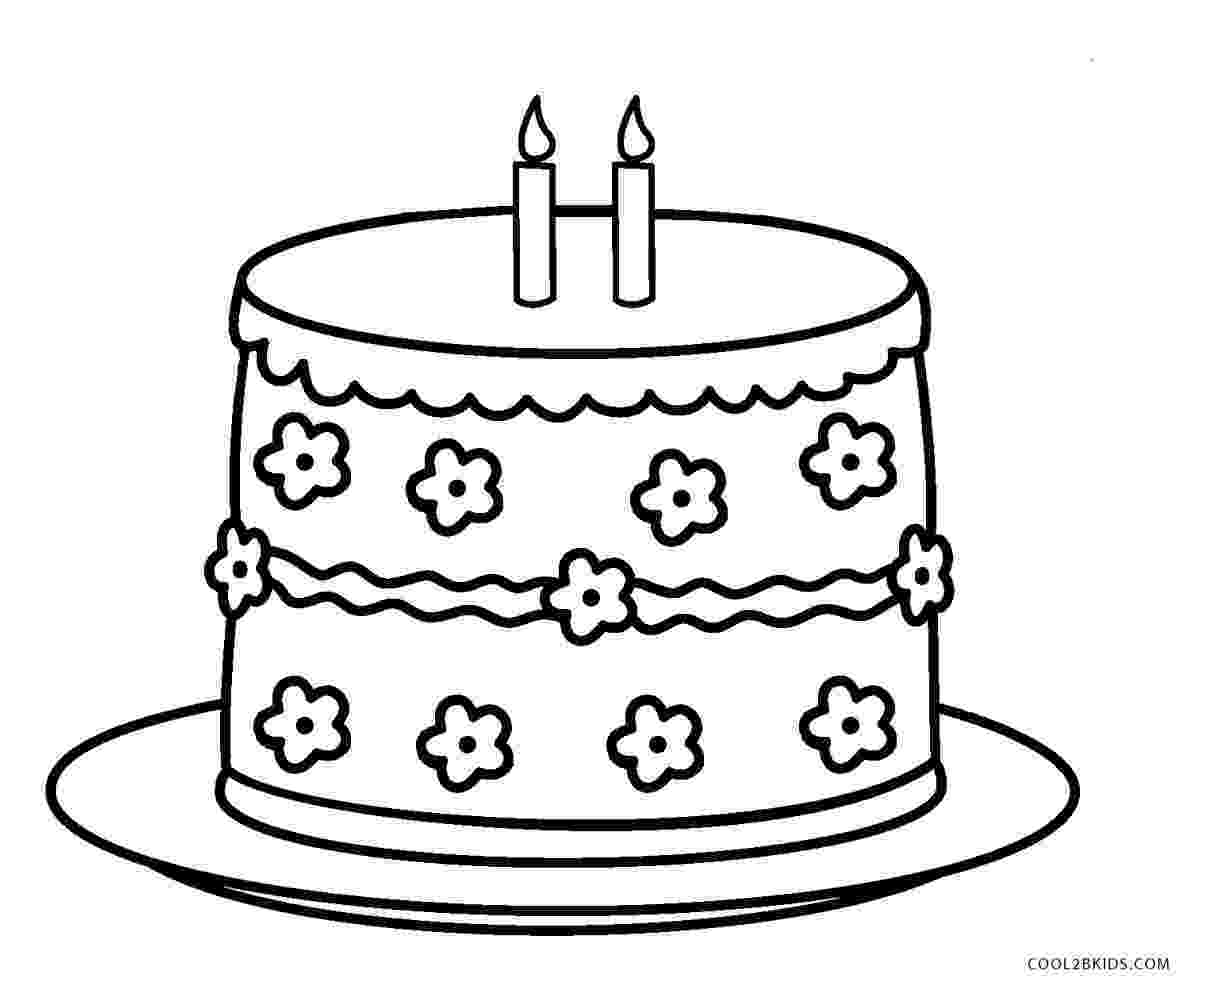 cake coloring pages to print free printable birthday cake coloring pages for kids to coloring print cake pages